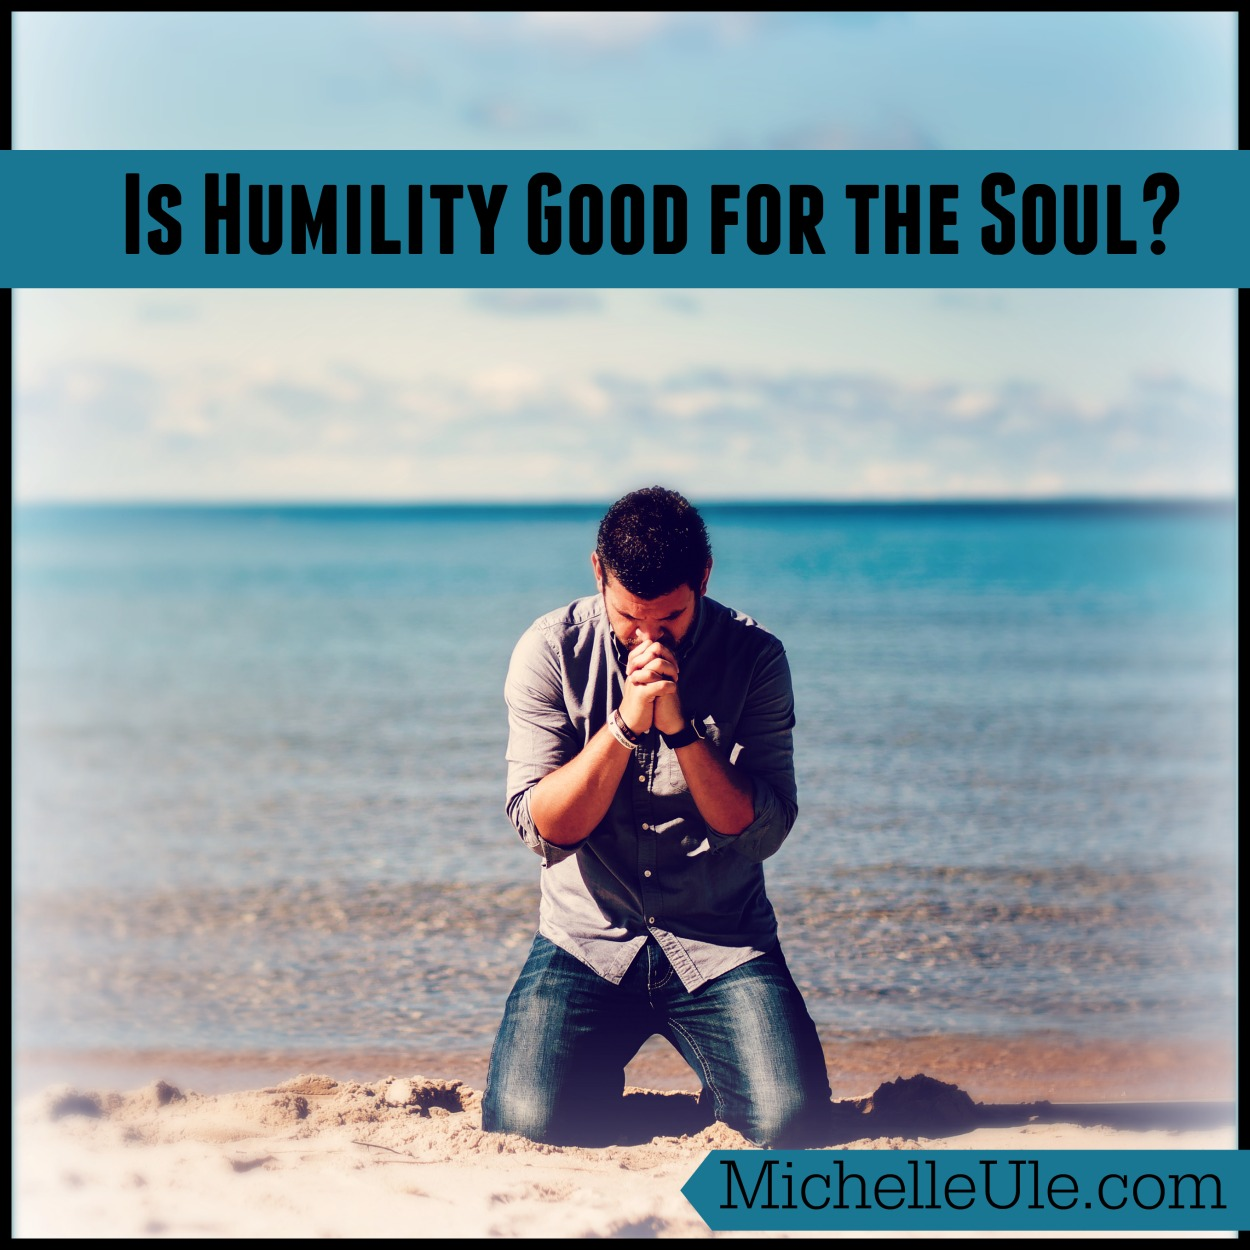 is humility good for the soul michelle ule author humility is good for my soul thank you very much